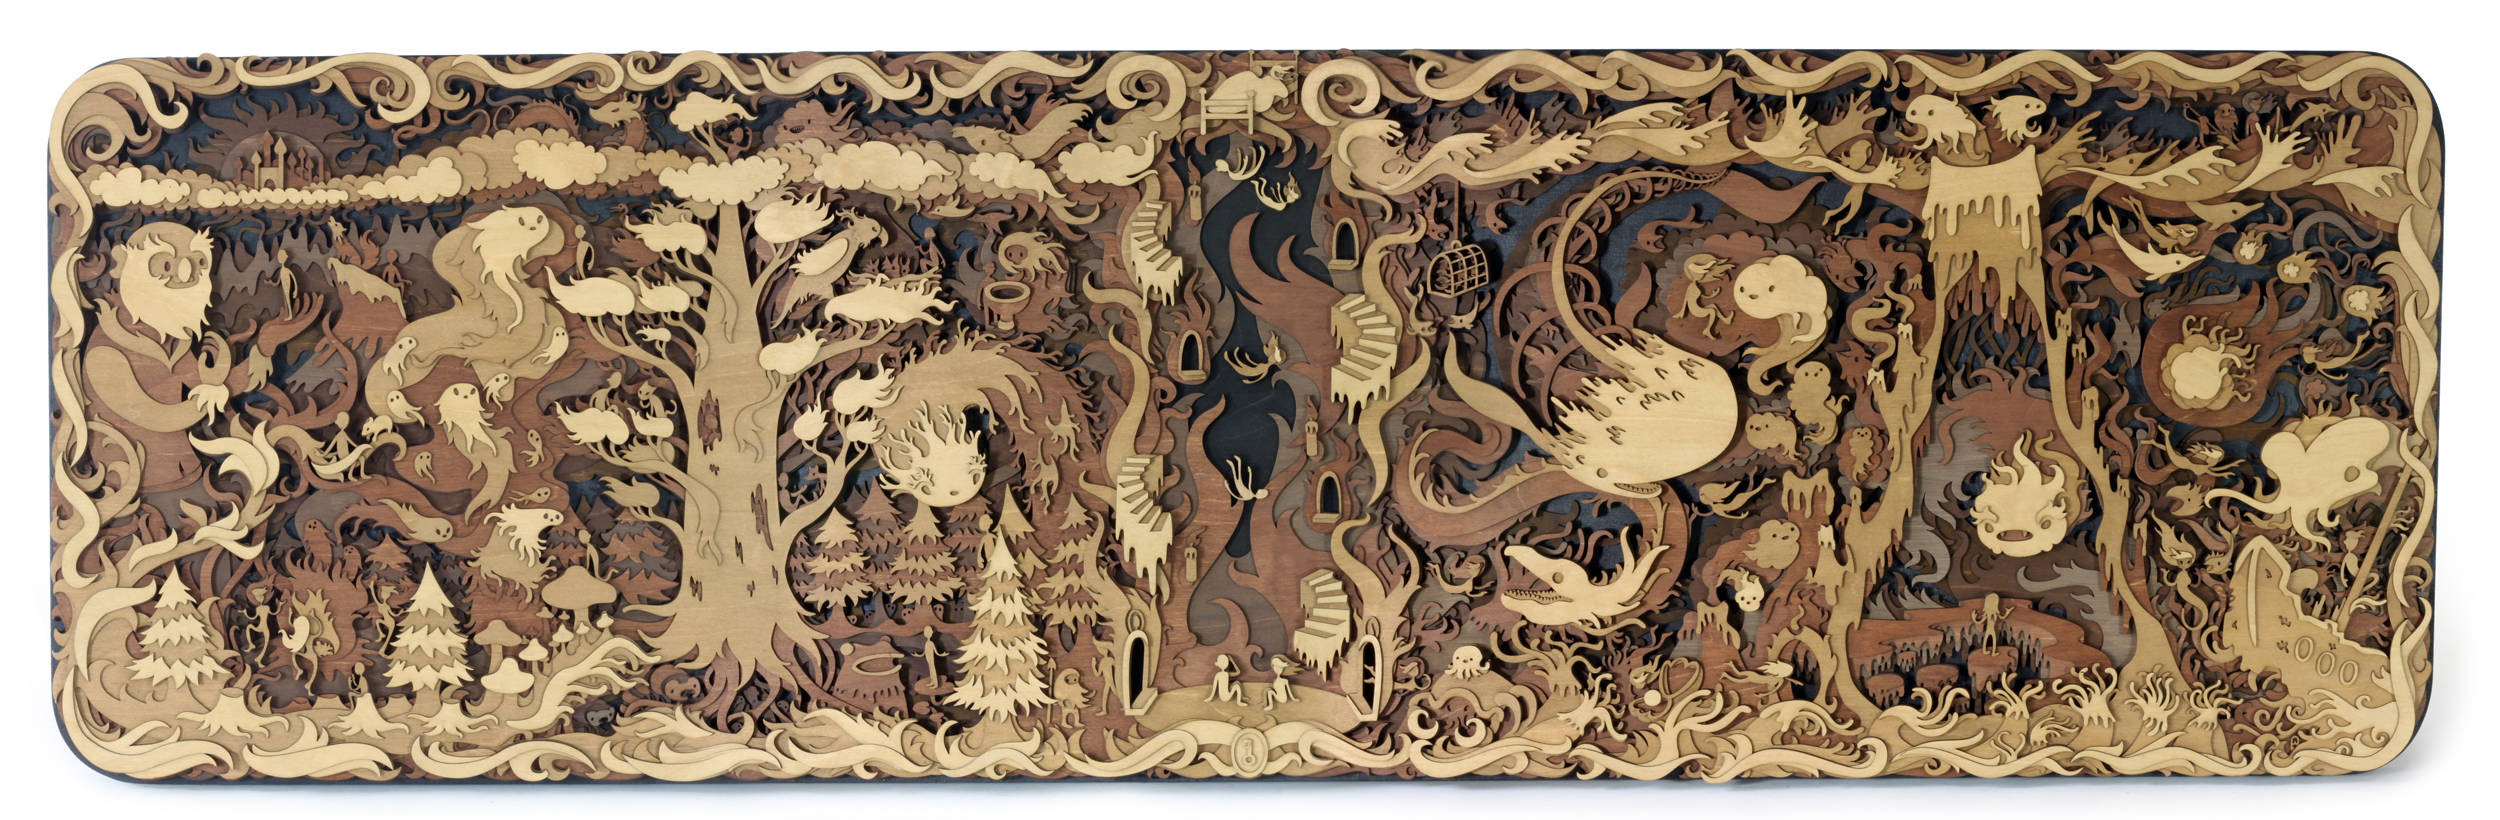 laser cut artwork fantasy storybook